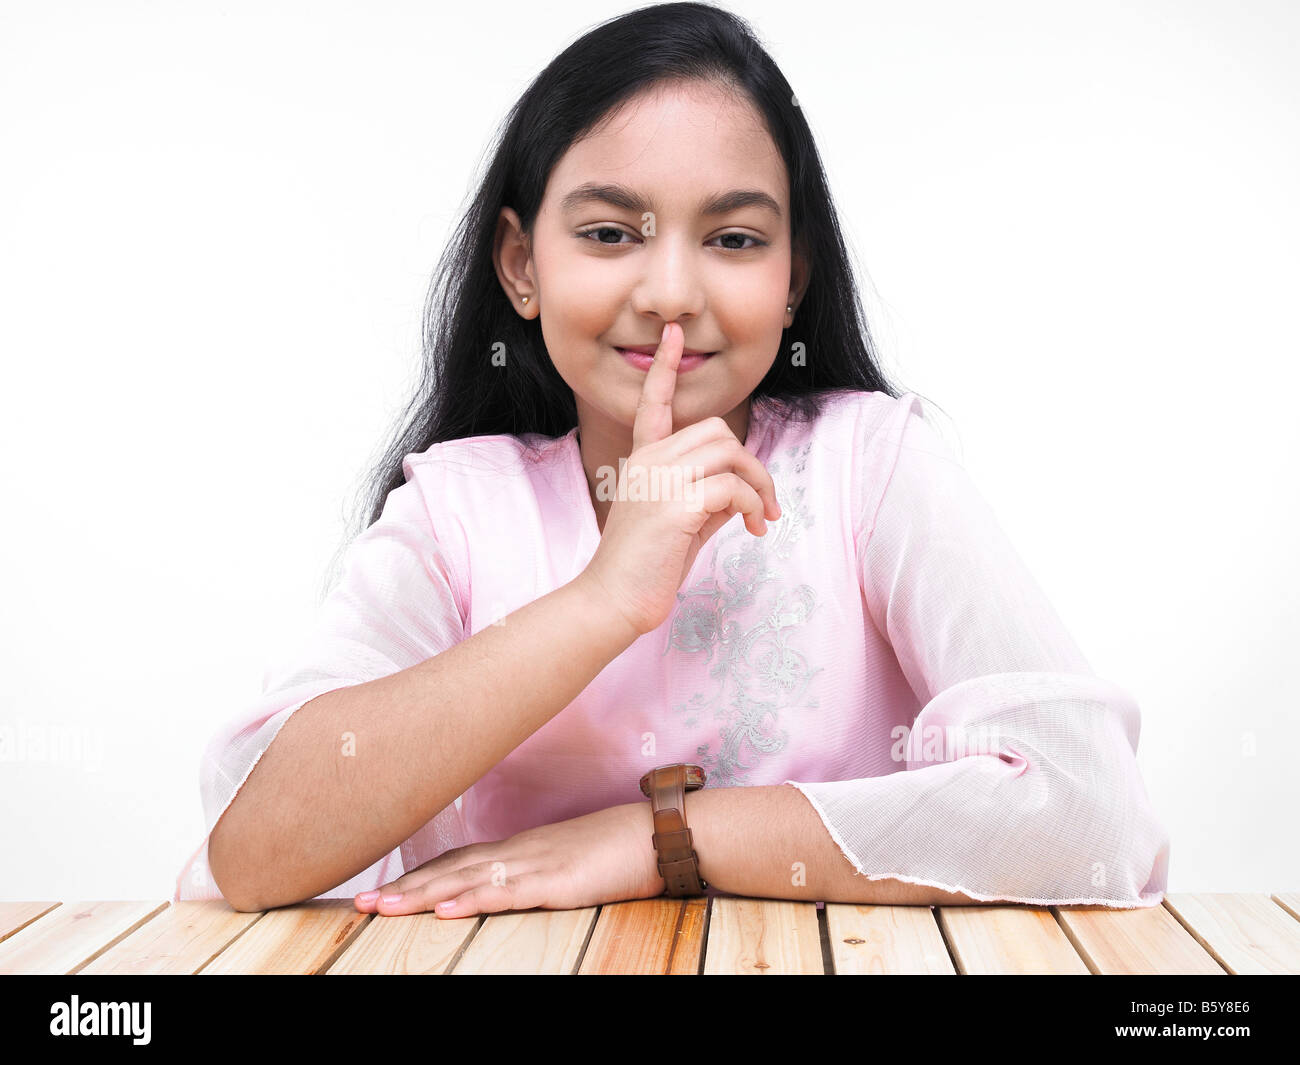 Portrait Of A Cute Asian Teenage Girl Of Indian Origin With Finger On Her Lips